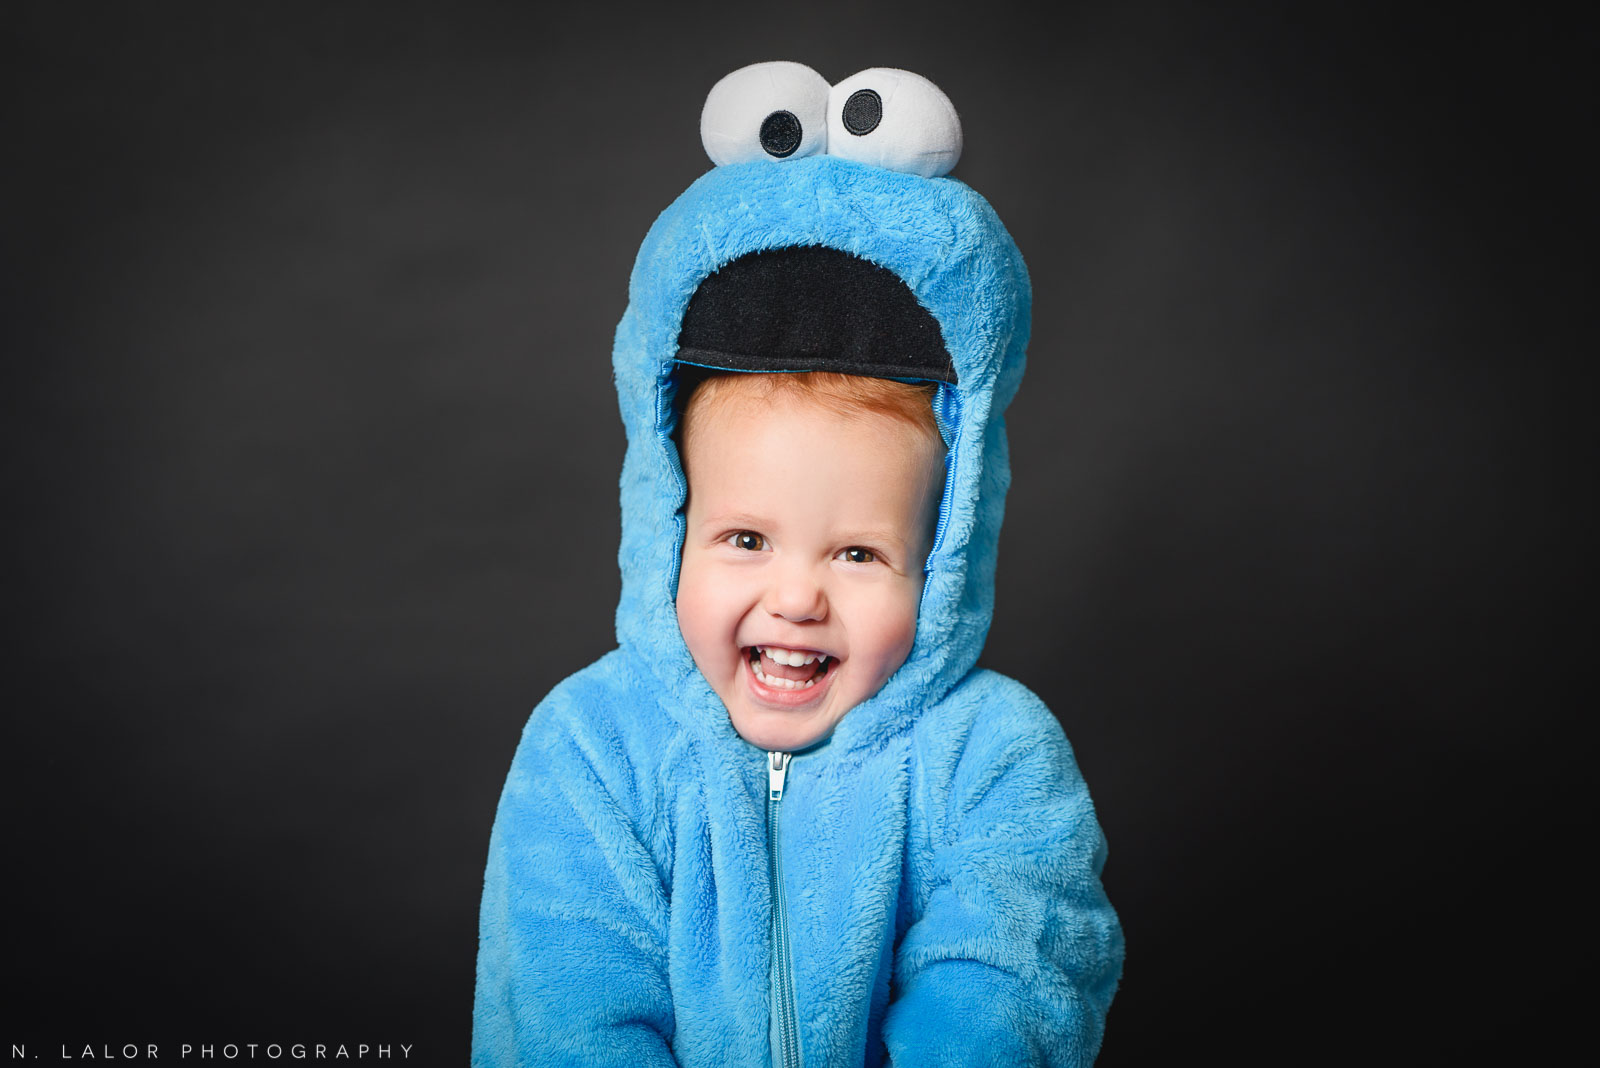 Cookie monster costume! Kids Halloween Portrait by N. Lalor Photography in Greenwich, Connecticut.